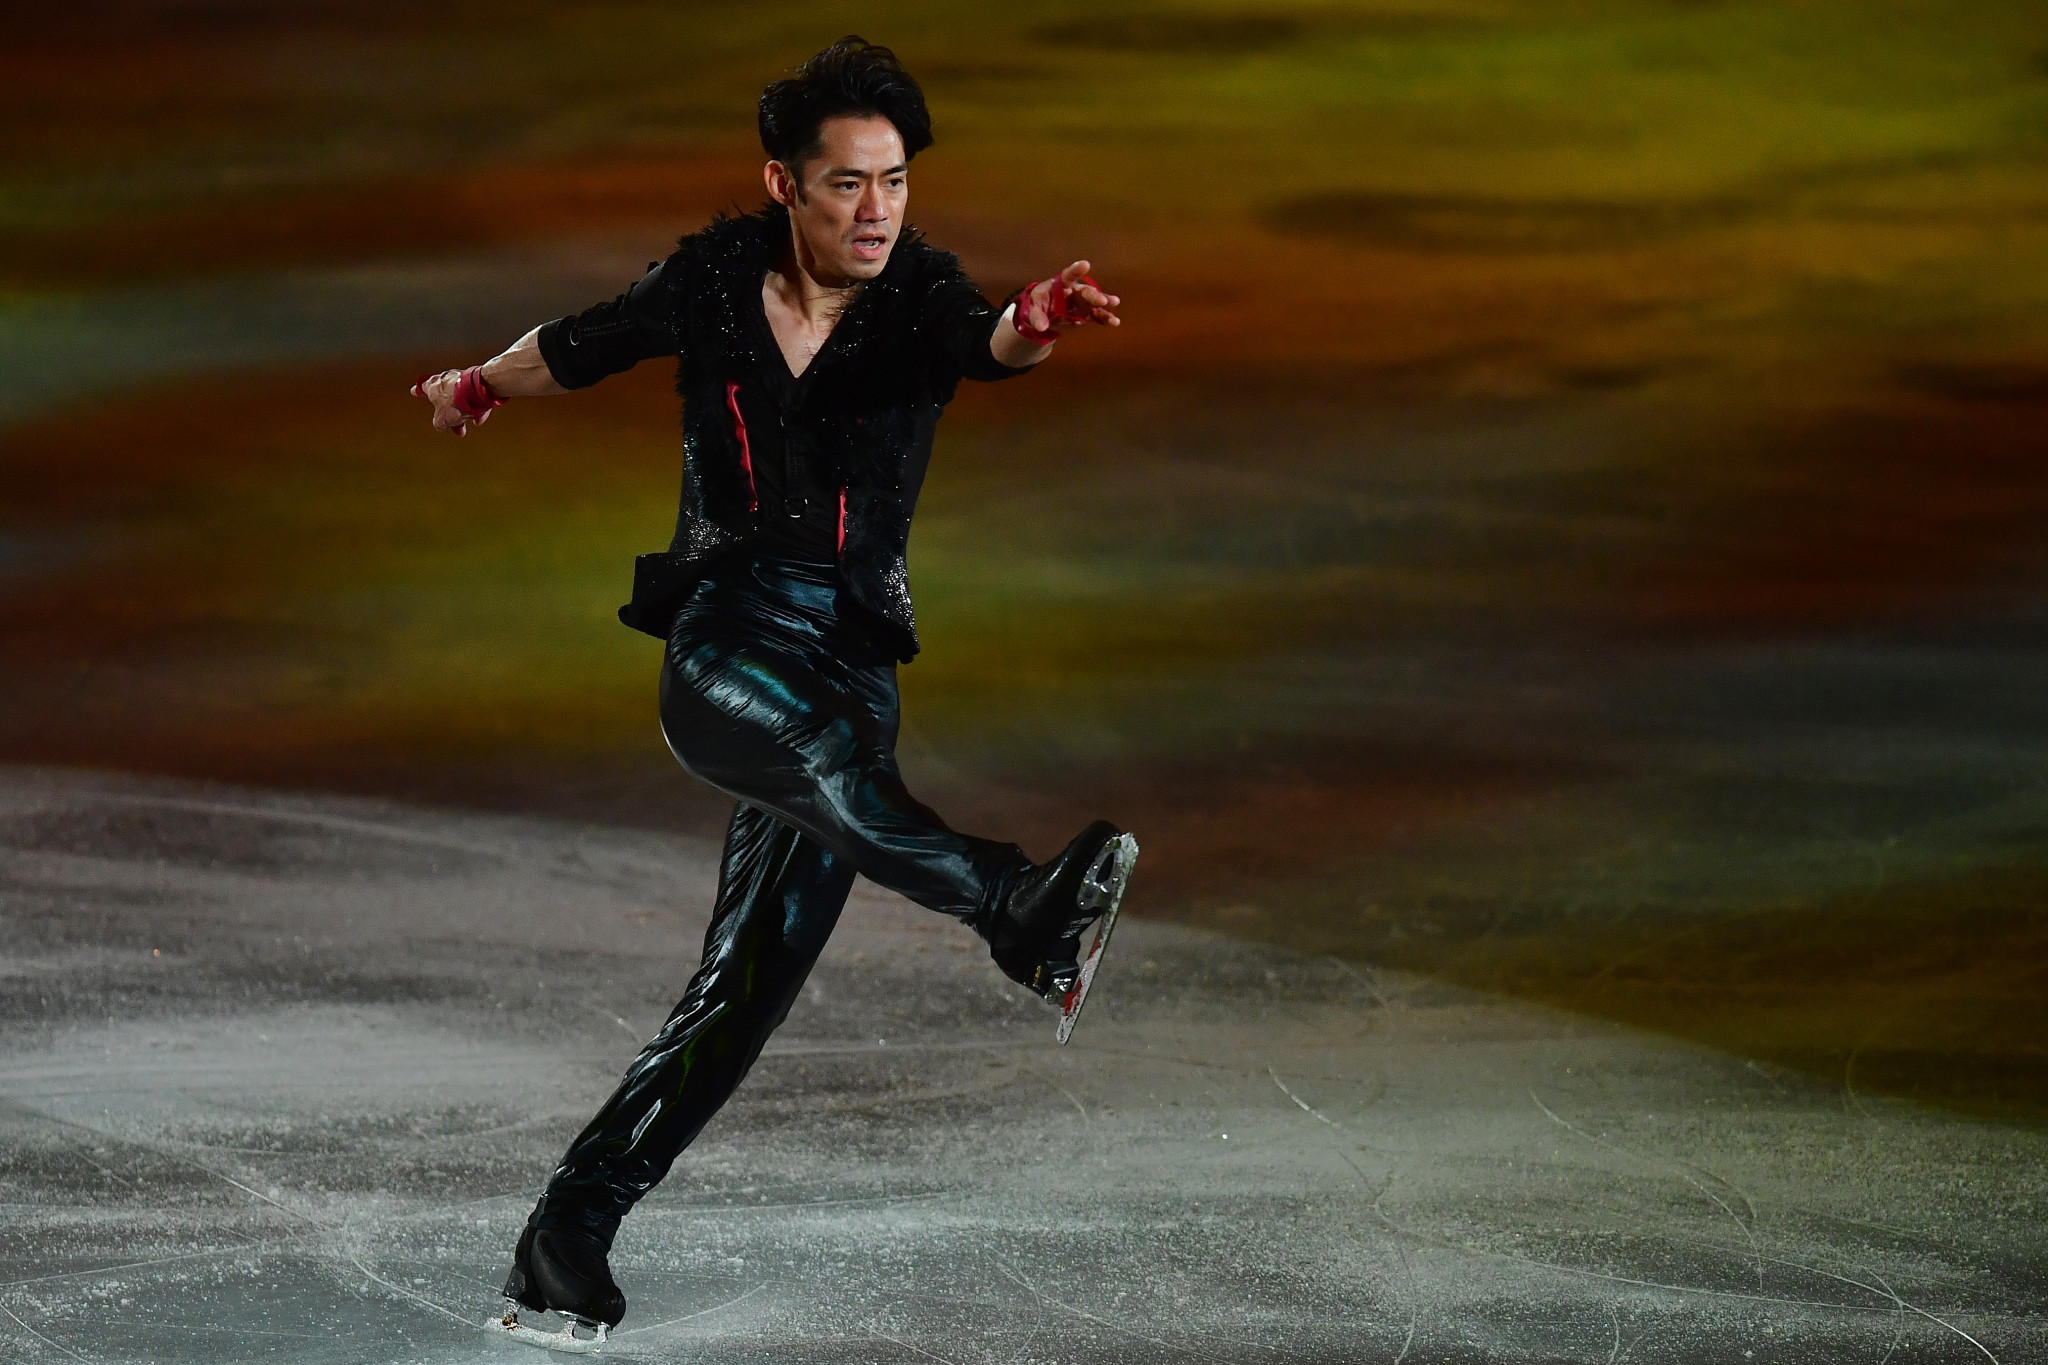 Takahashi to make ice dance debut at Grand Prix of Figure Skating event in Osaka